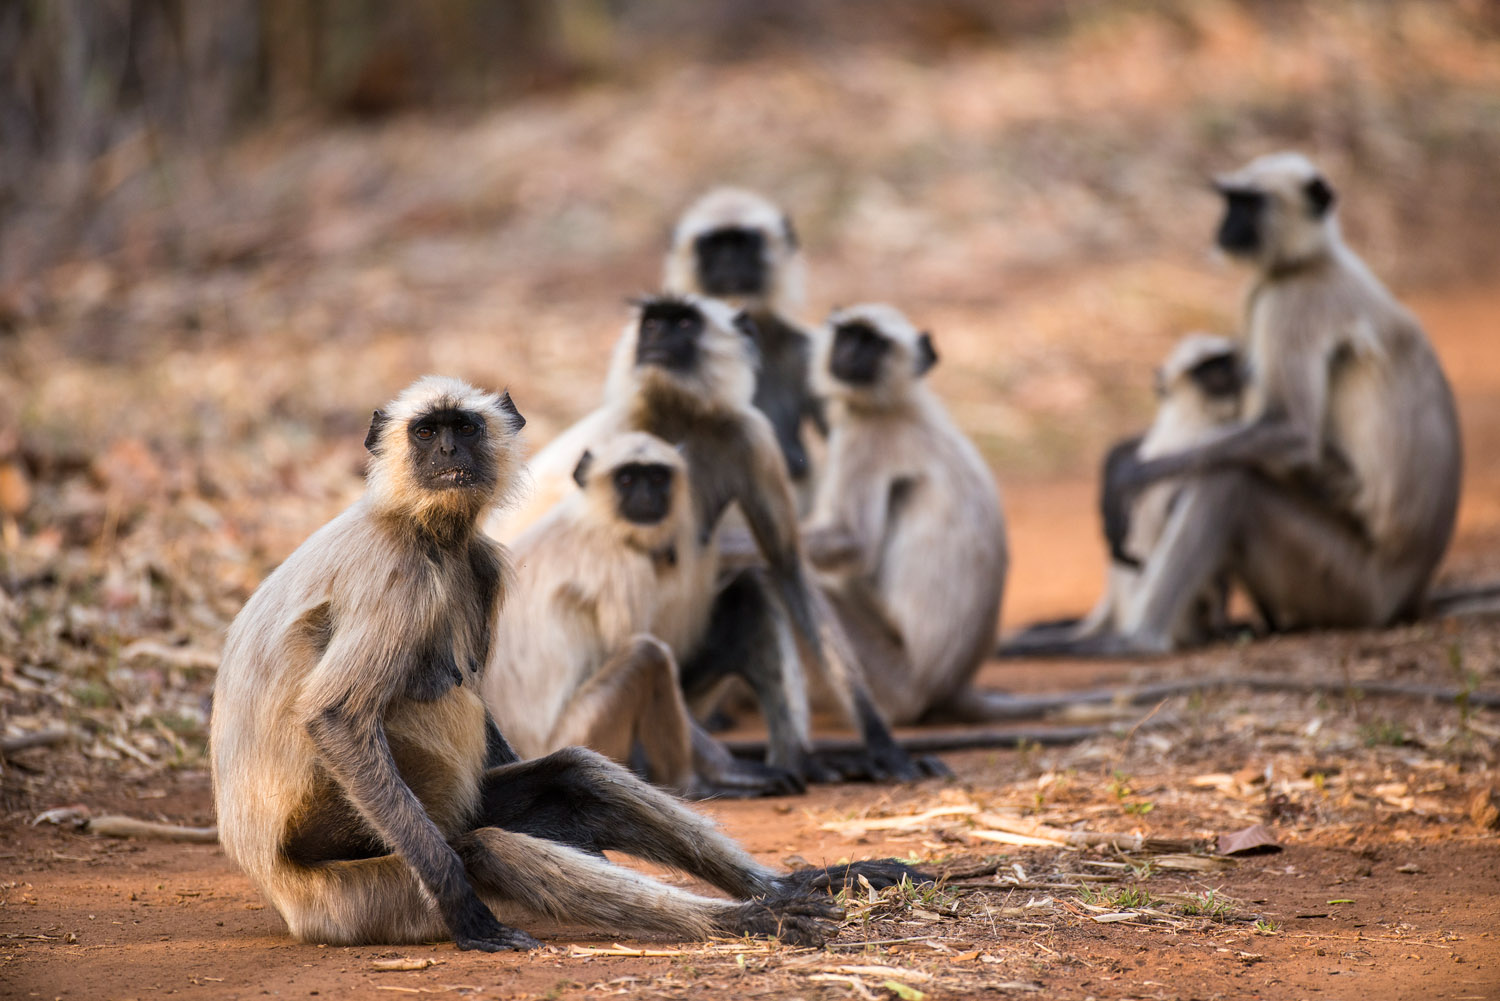 Hanuman langur monkey family resting on forest track, Bandhavgarh National Park, Madhya Pradesh, India